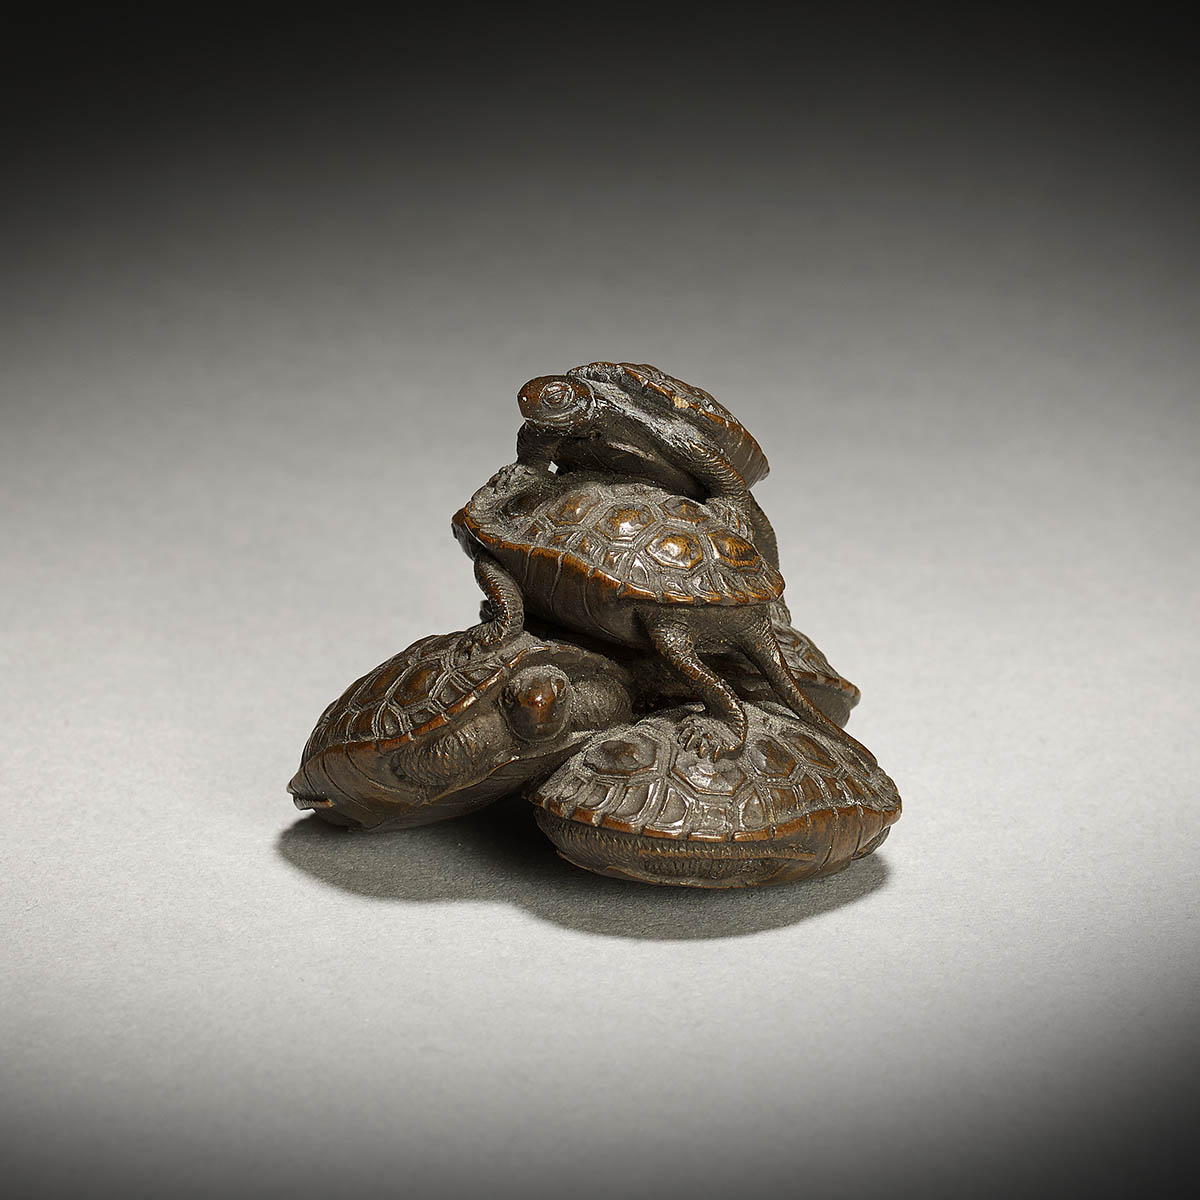 Wood netsuke of five turtles